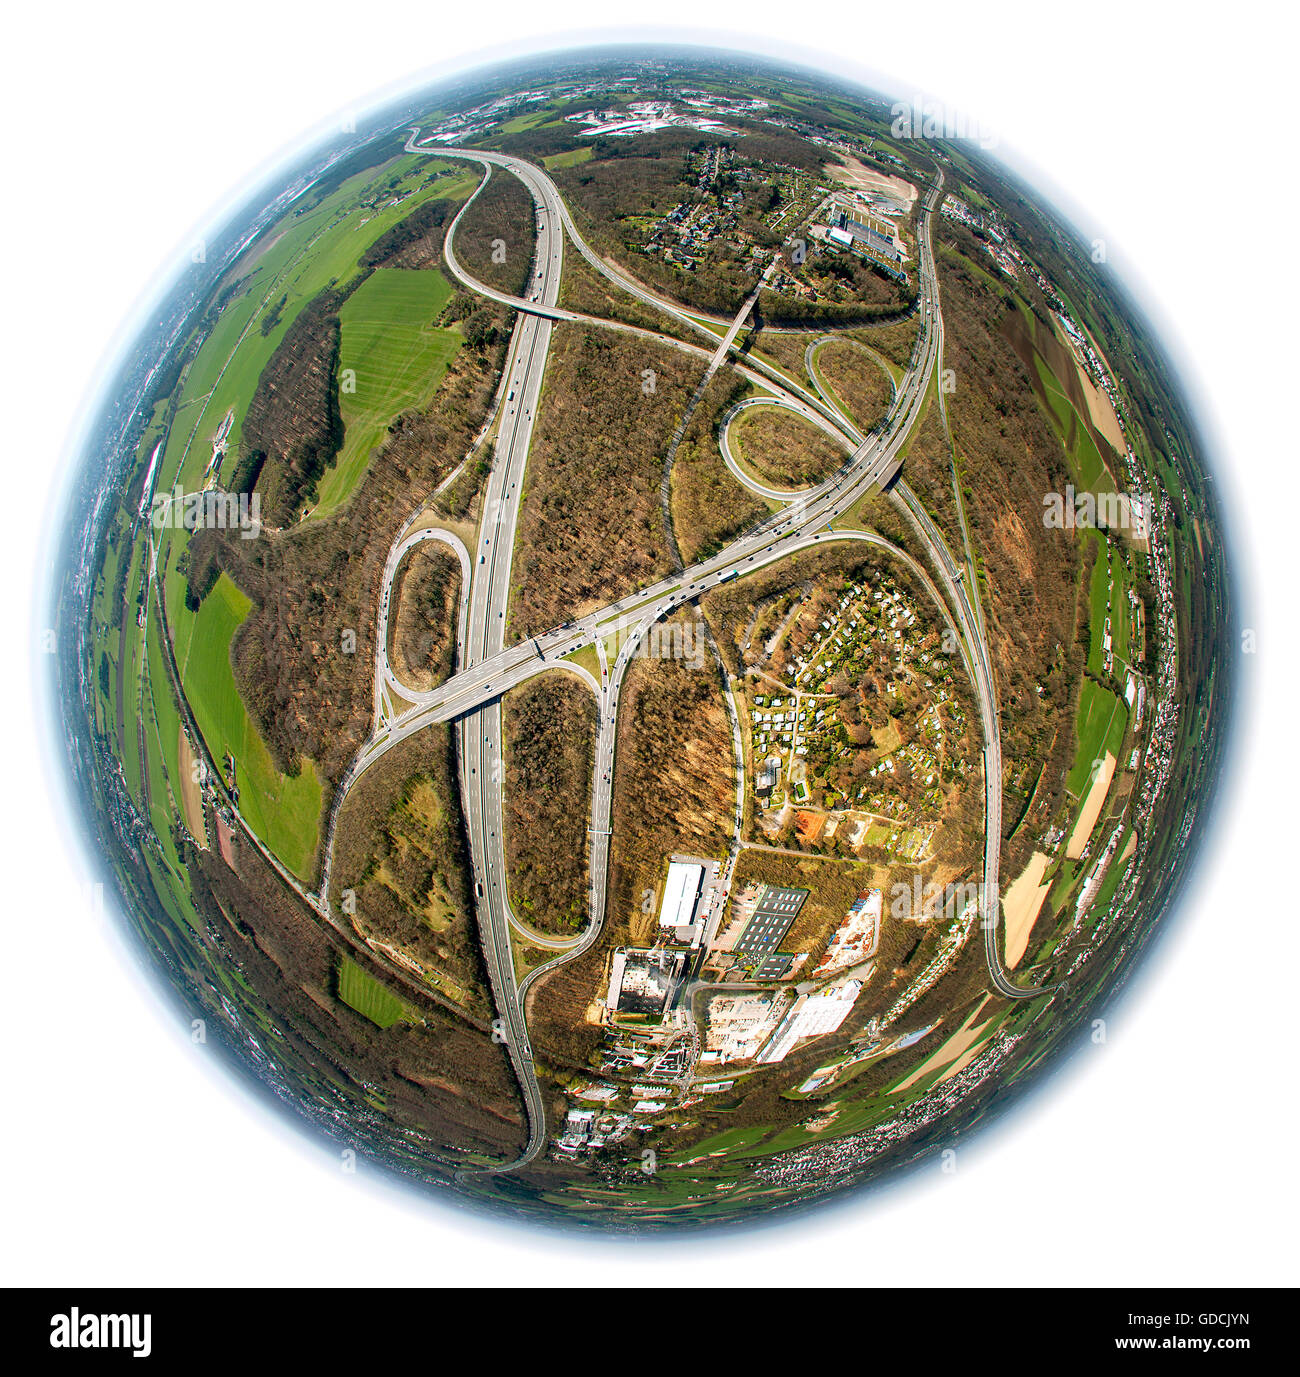 Aerial view, motorway junction A1 A43 A46 at Sprockhövel Haßlinghausen, Aerial view, fisheye image, Ruhr - Stock Image